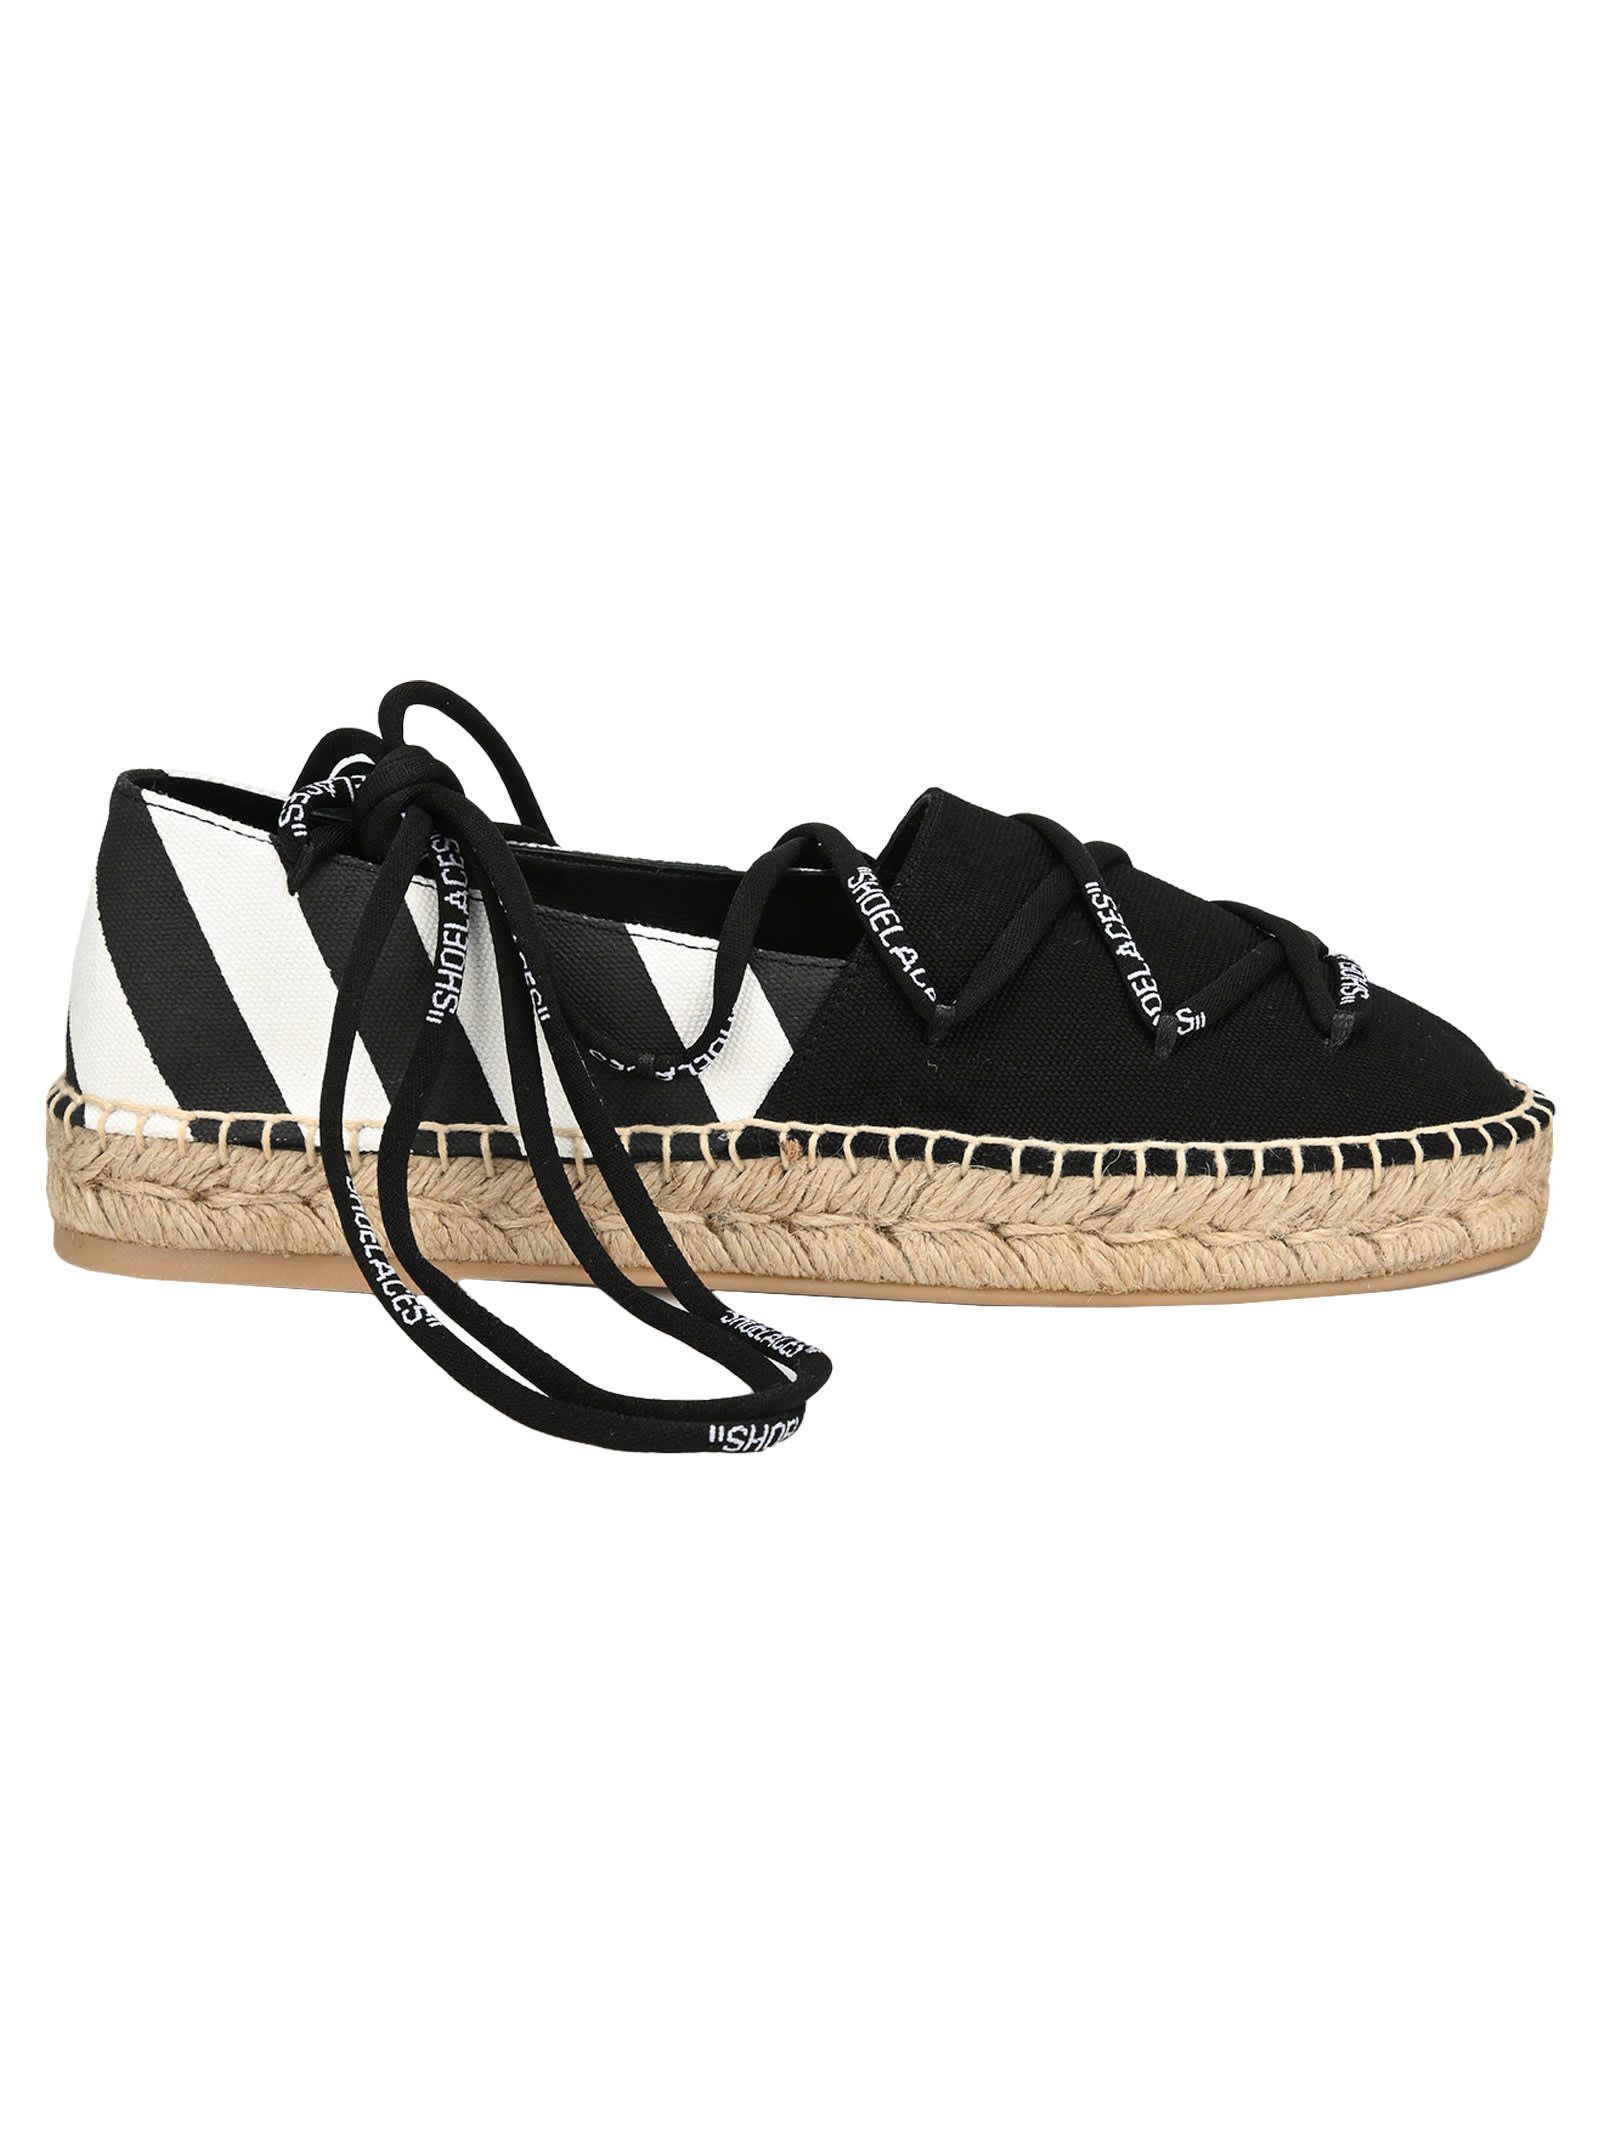 Off White Lace Up Flat Espadrilles